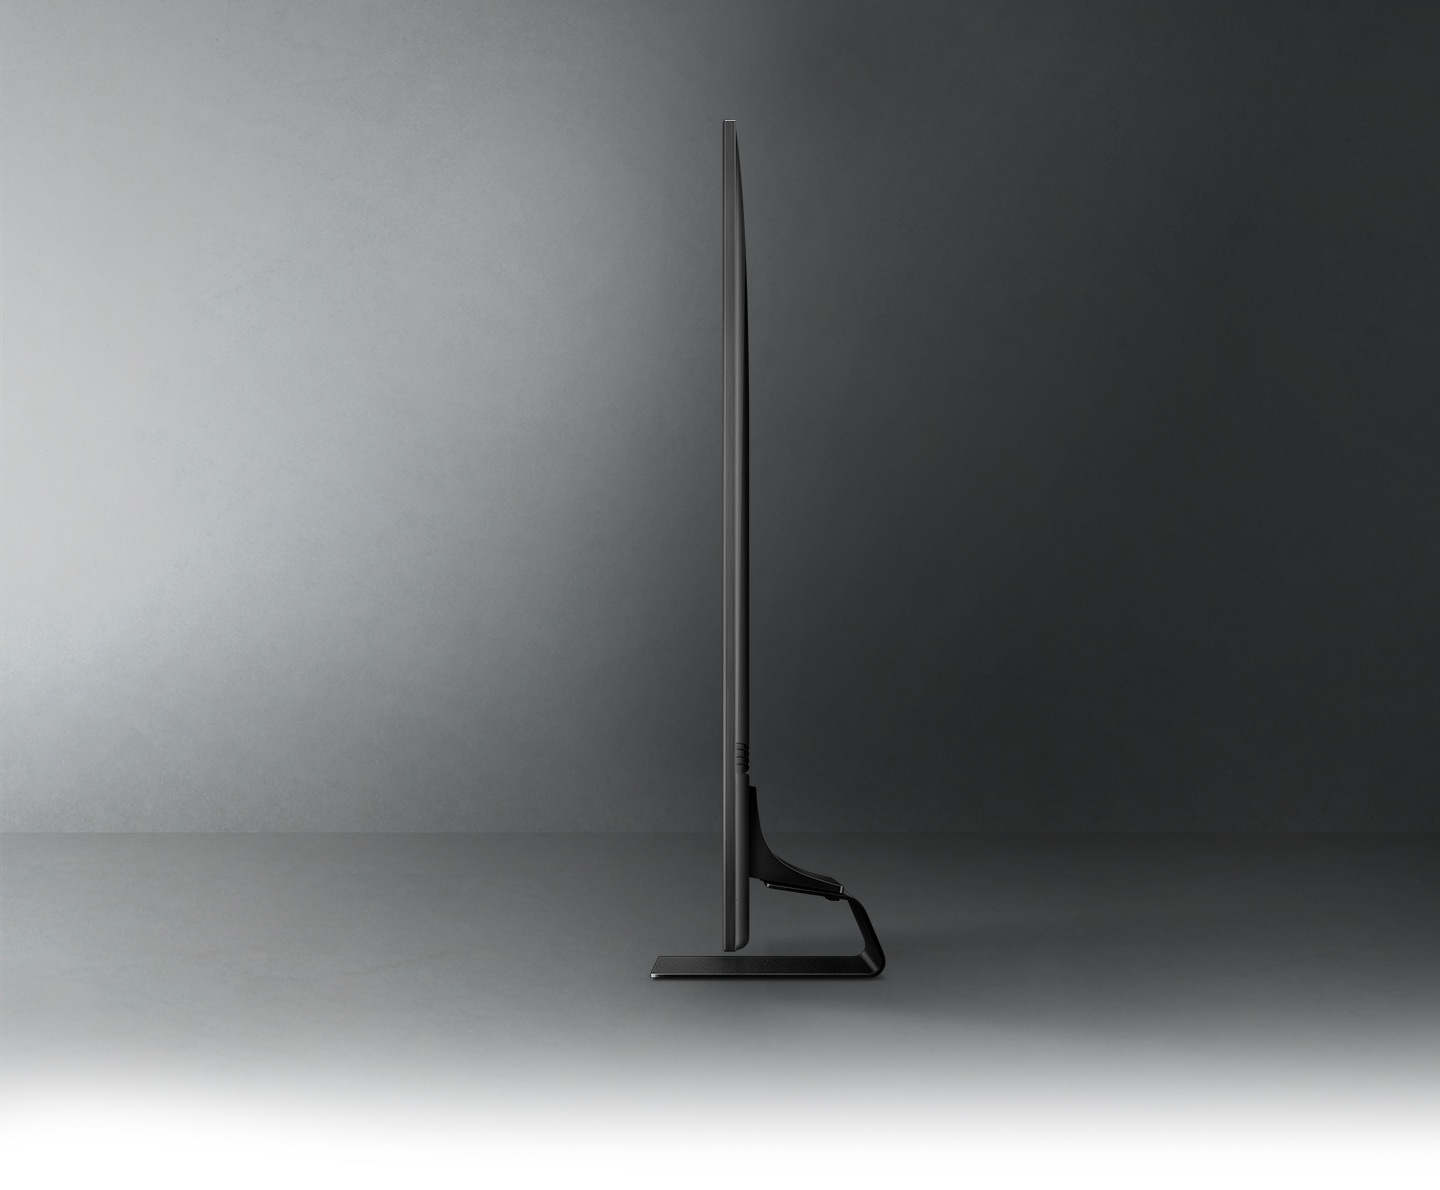 Profile view of QLED TV shows ultra slim design of QLED TV NeoSlim.